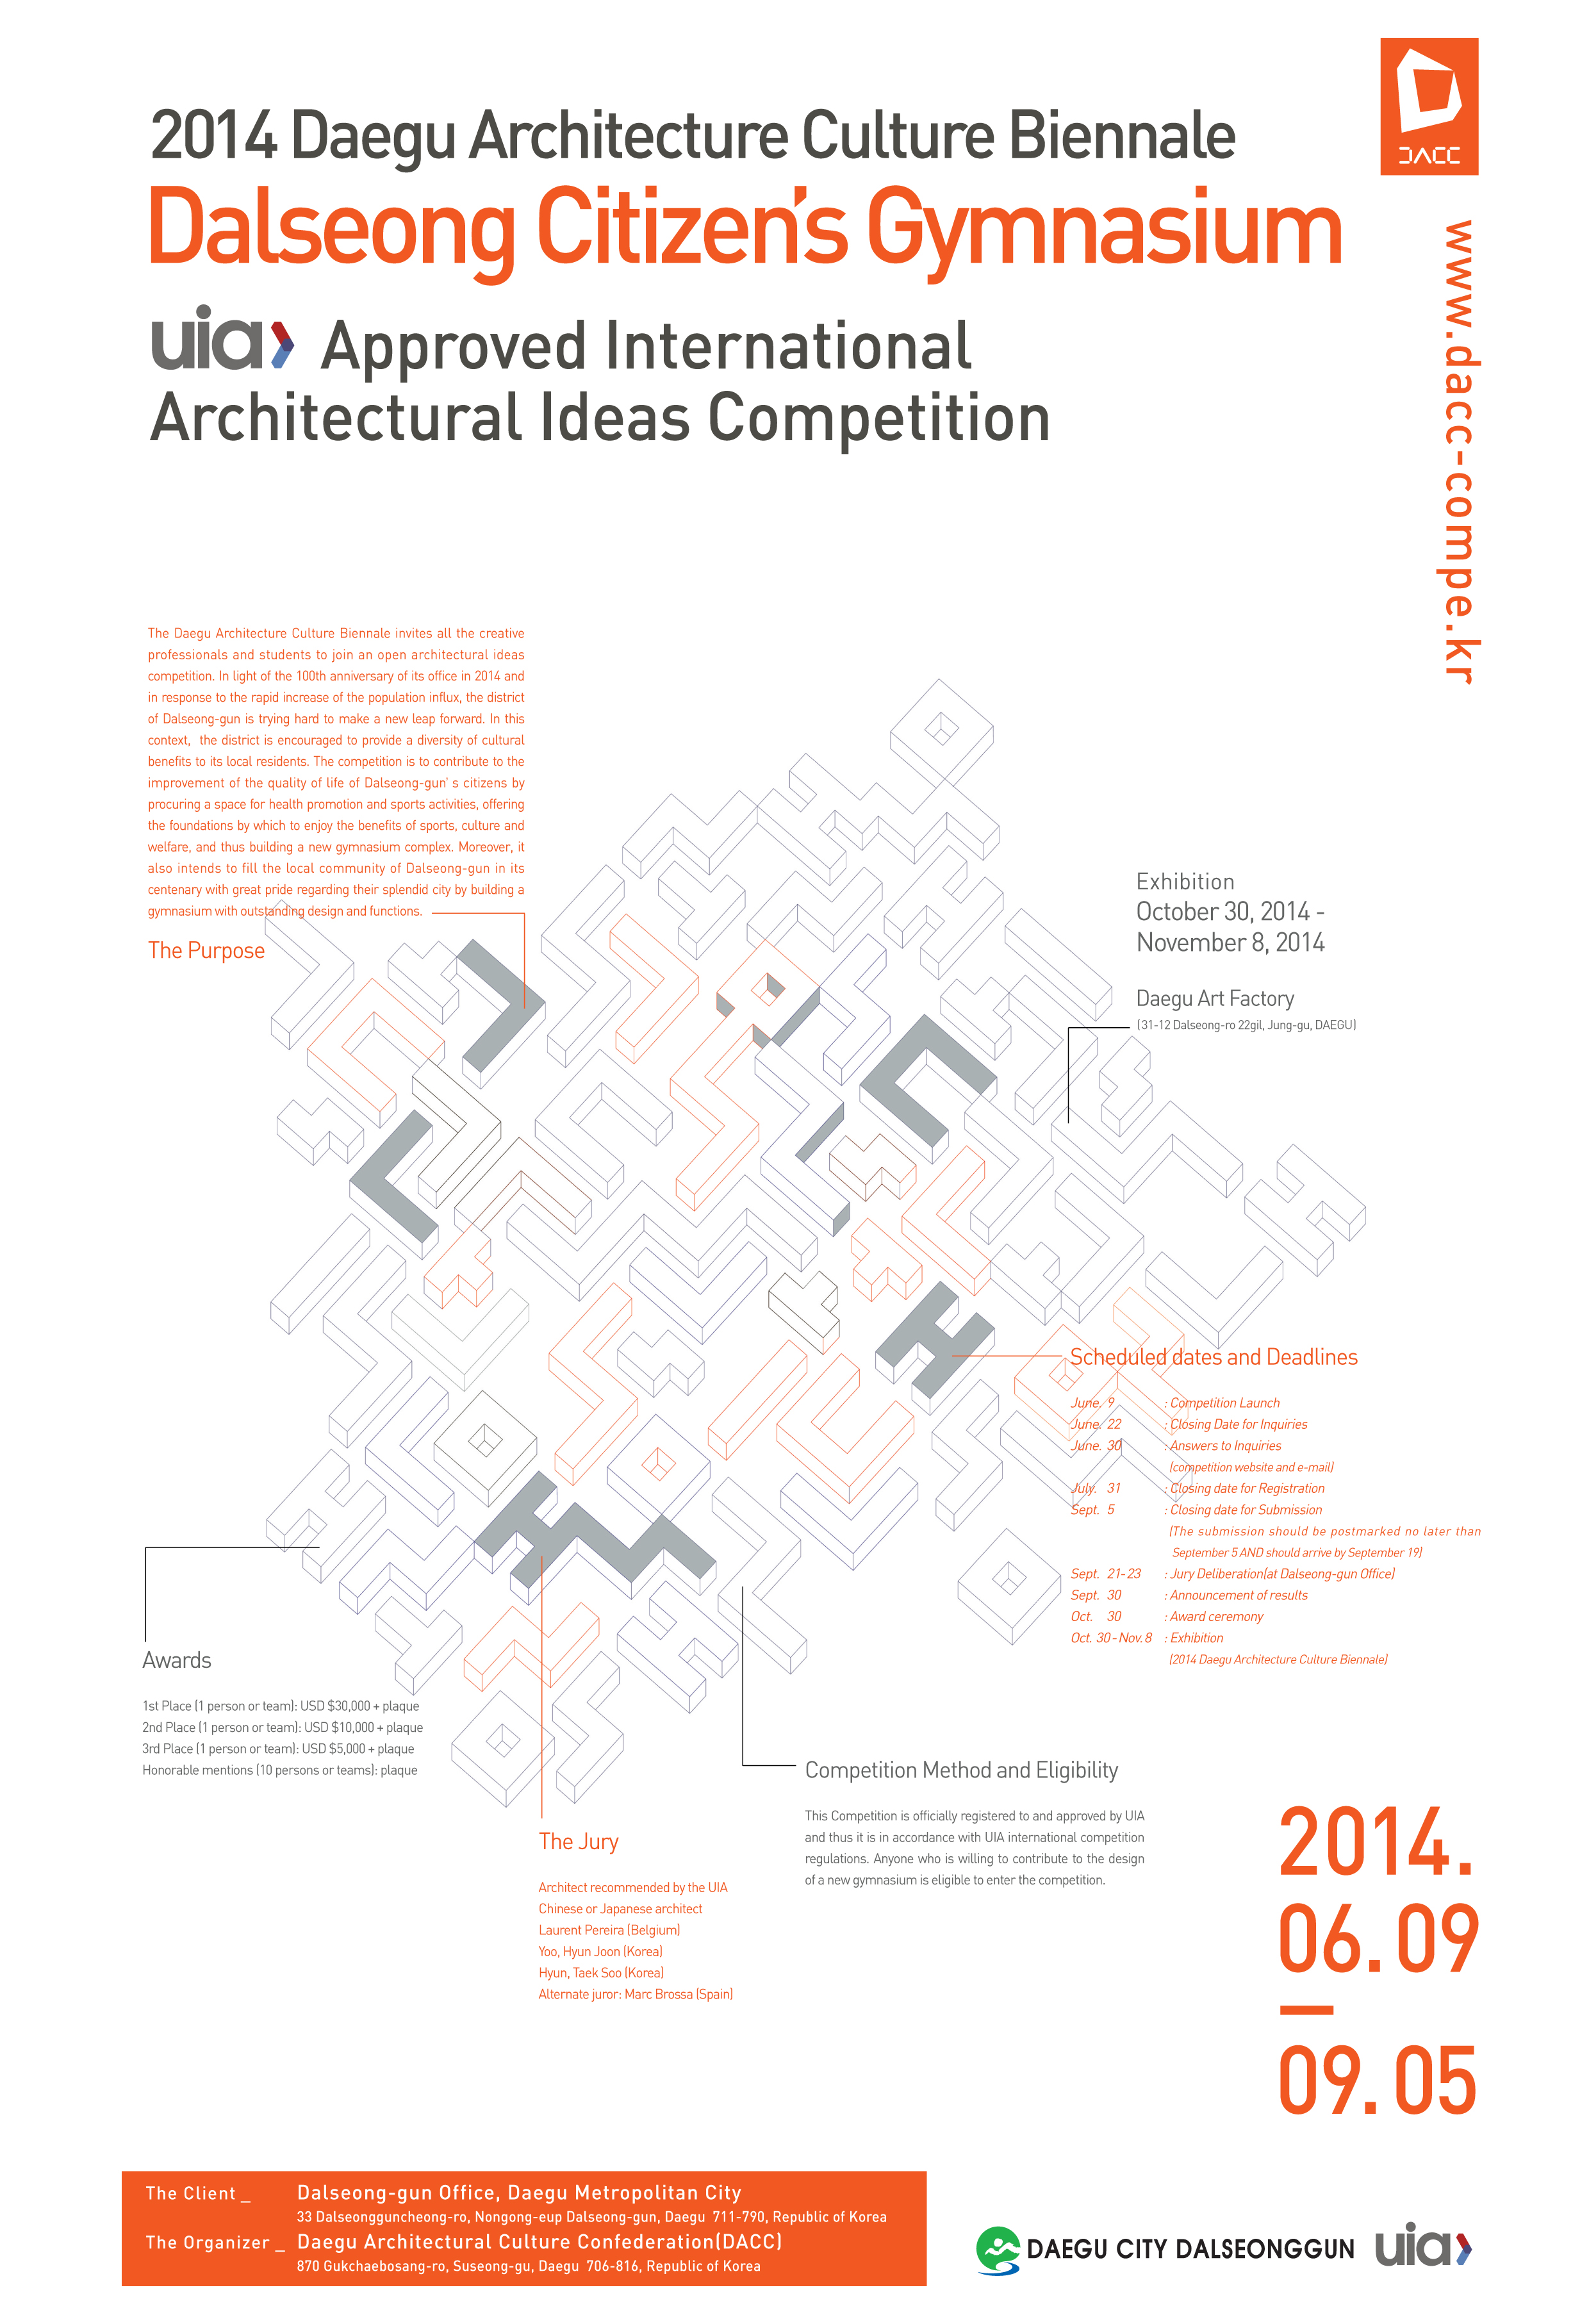 Dalseong Citizen's Gymnasium – International Architectural Ideas Competition